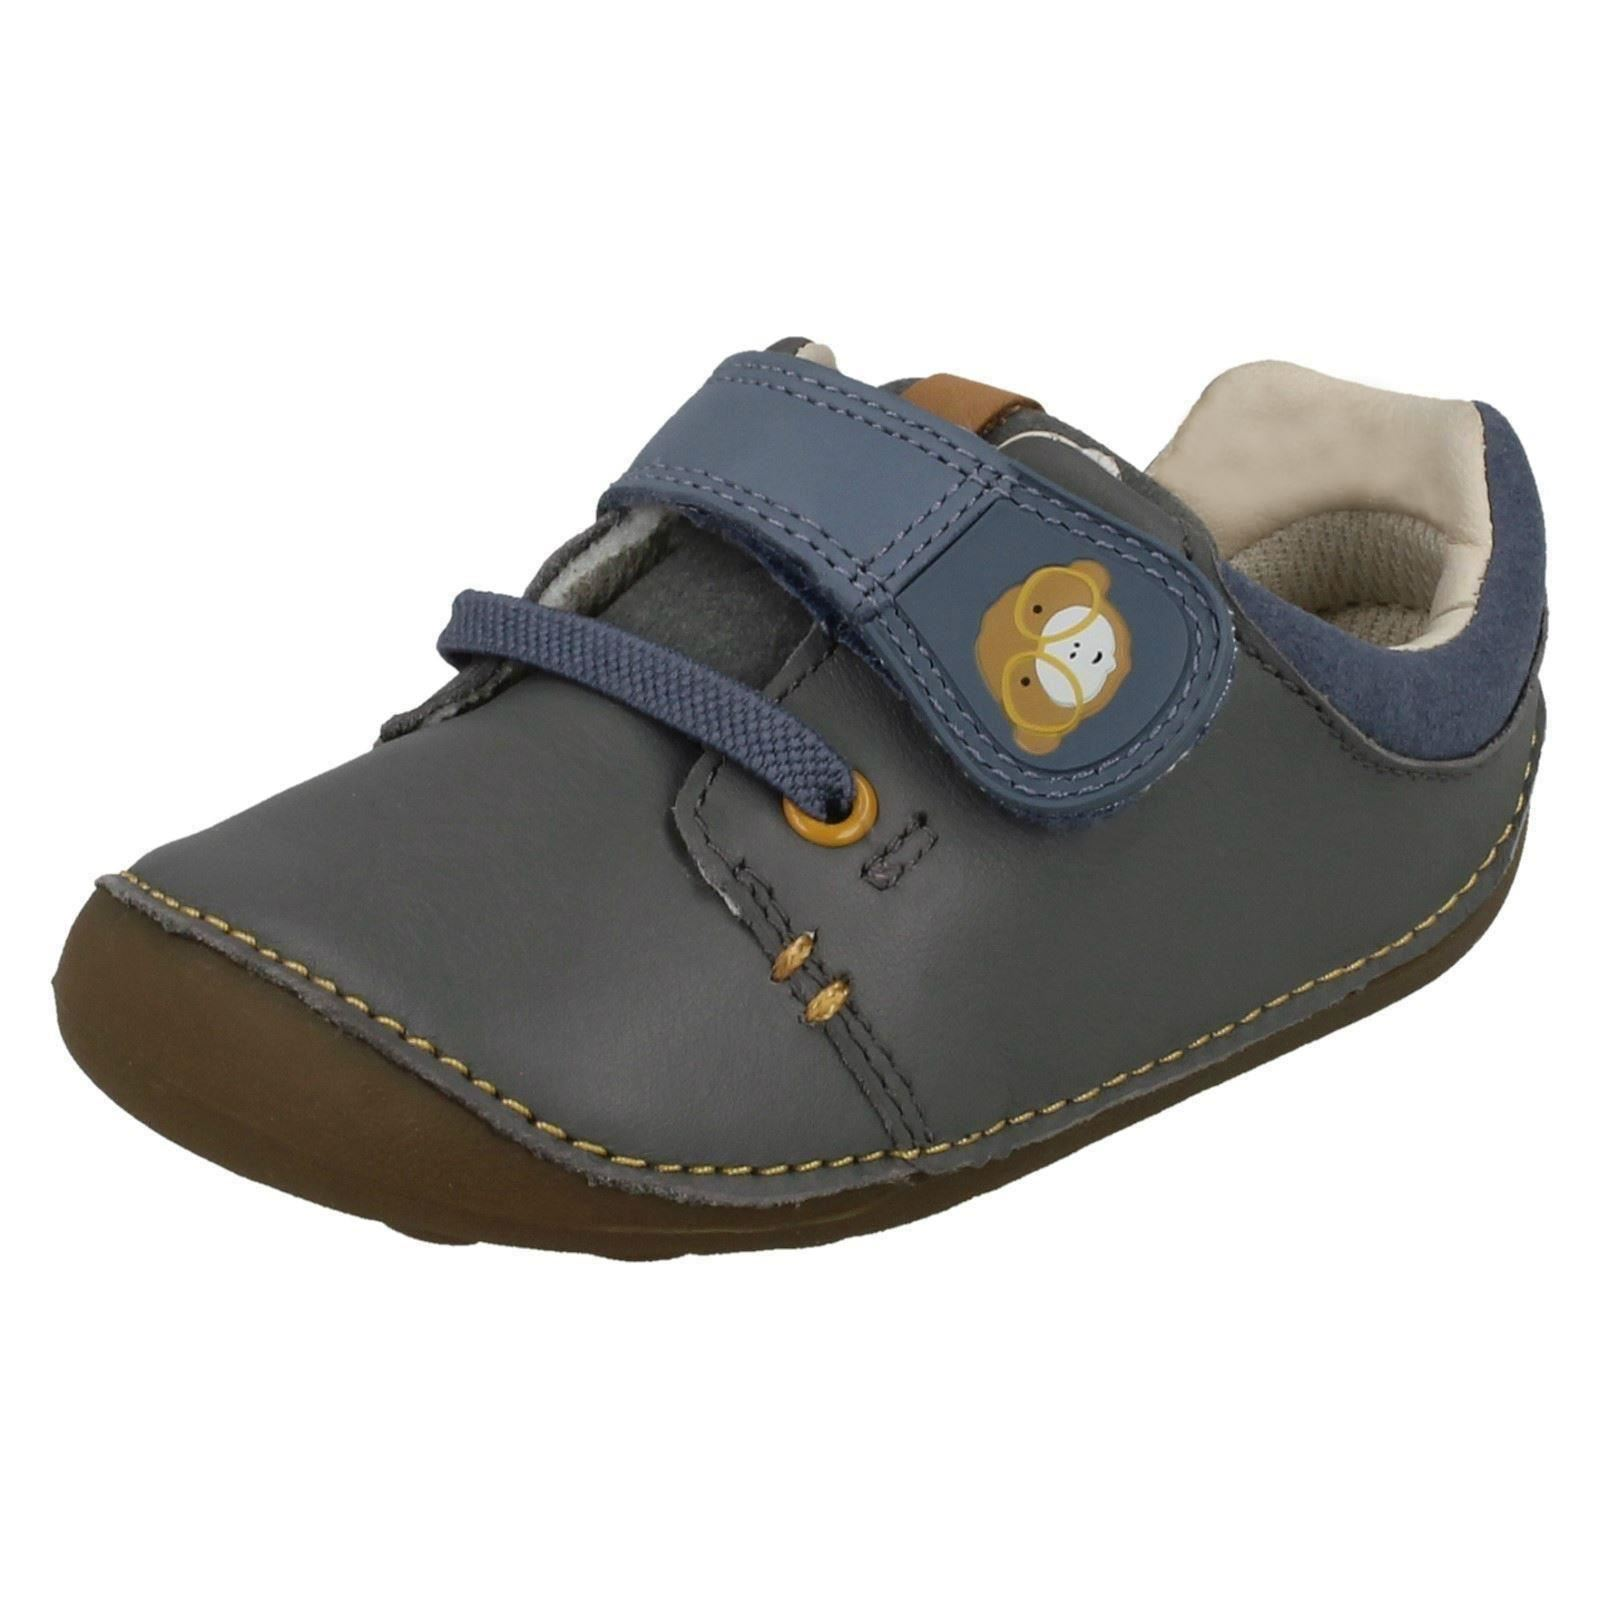 clarks baby boy shoes